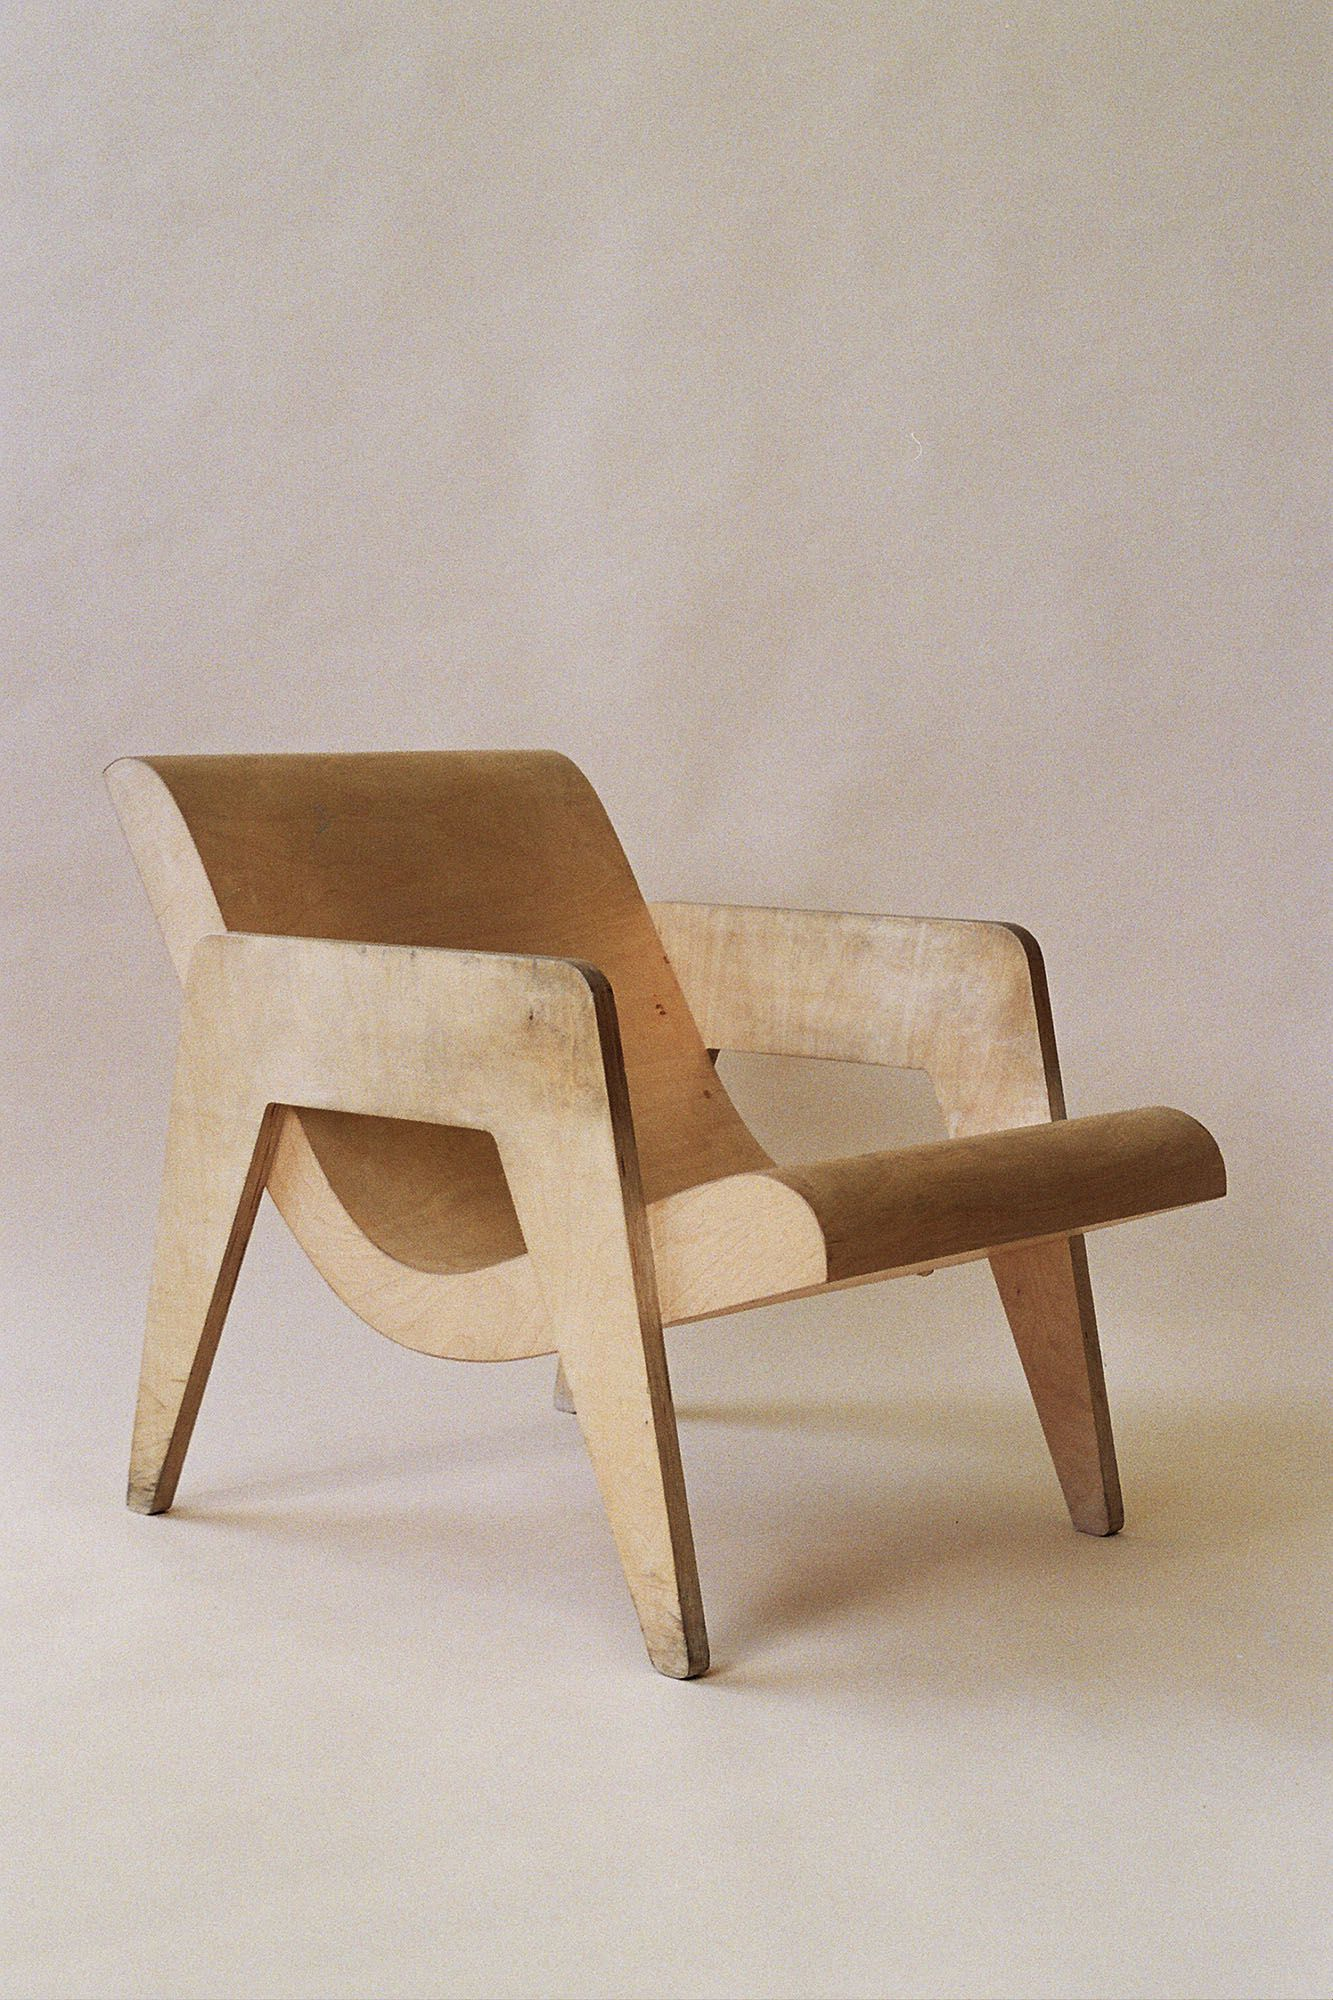 Nick Goldfinger plywood armchair, 90's. This remake was originally designed in 1937 by his grandfather Ernö Goldfinger